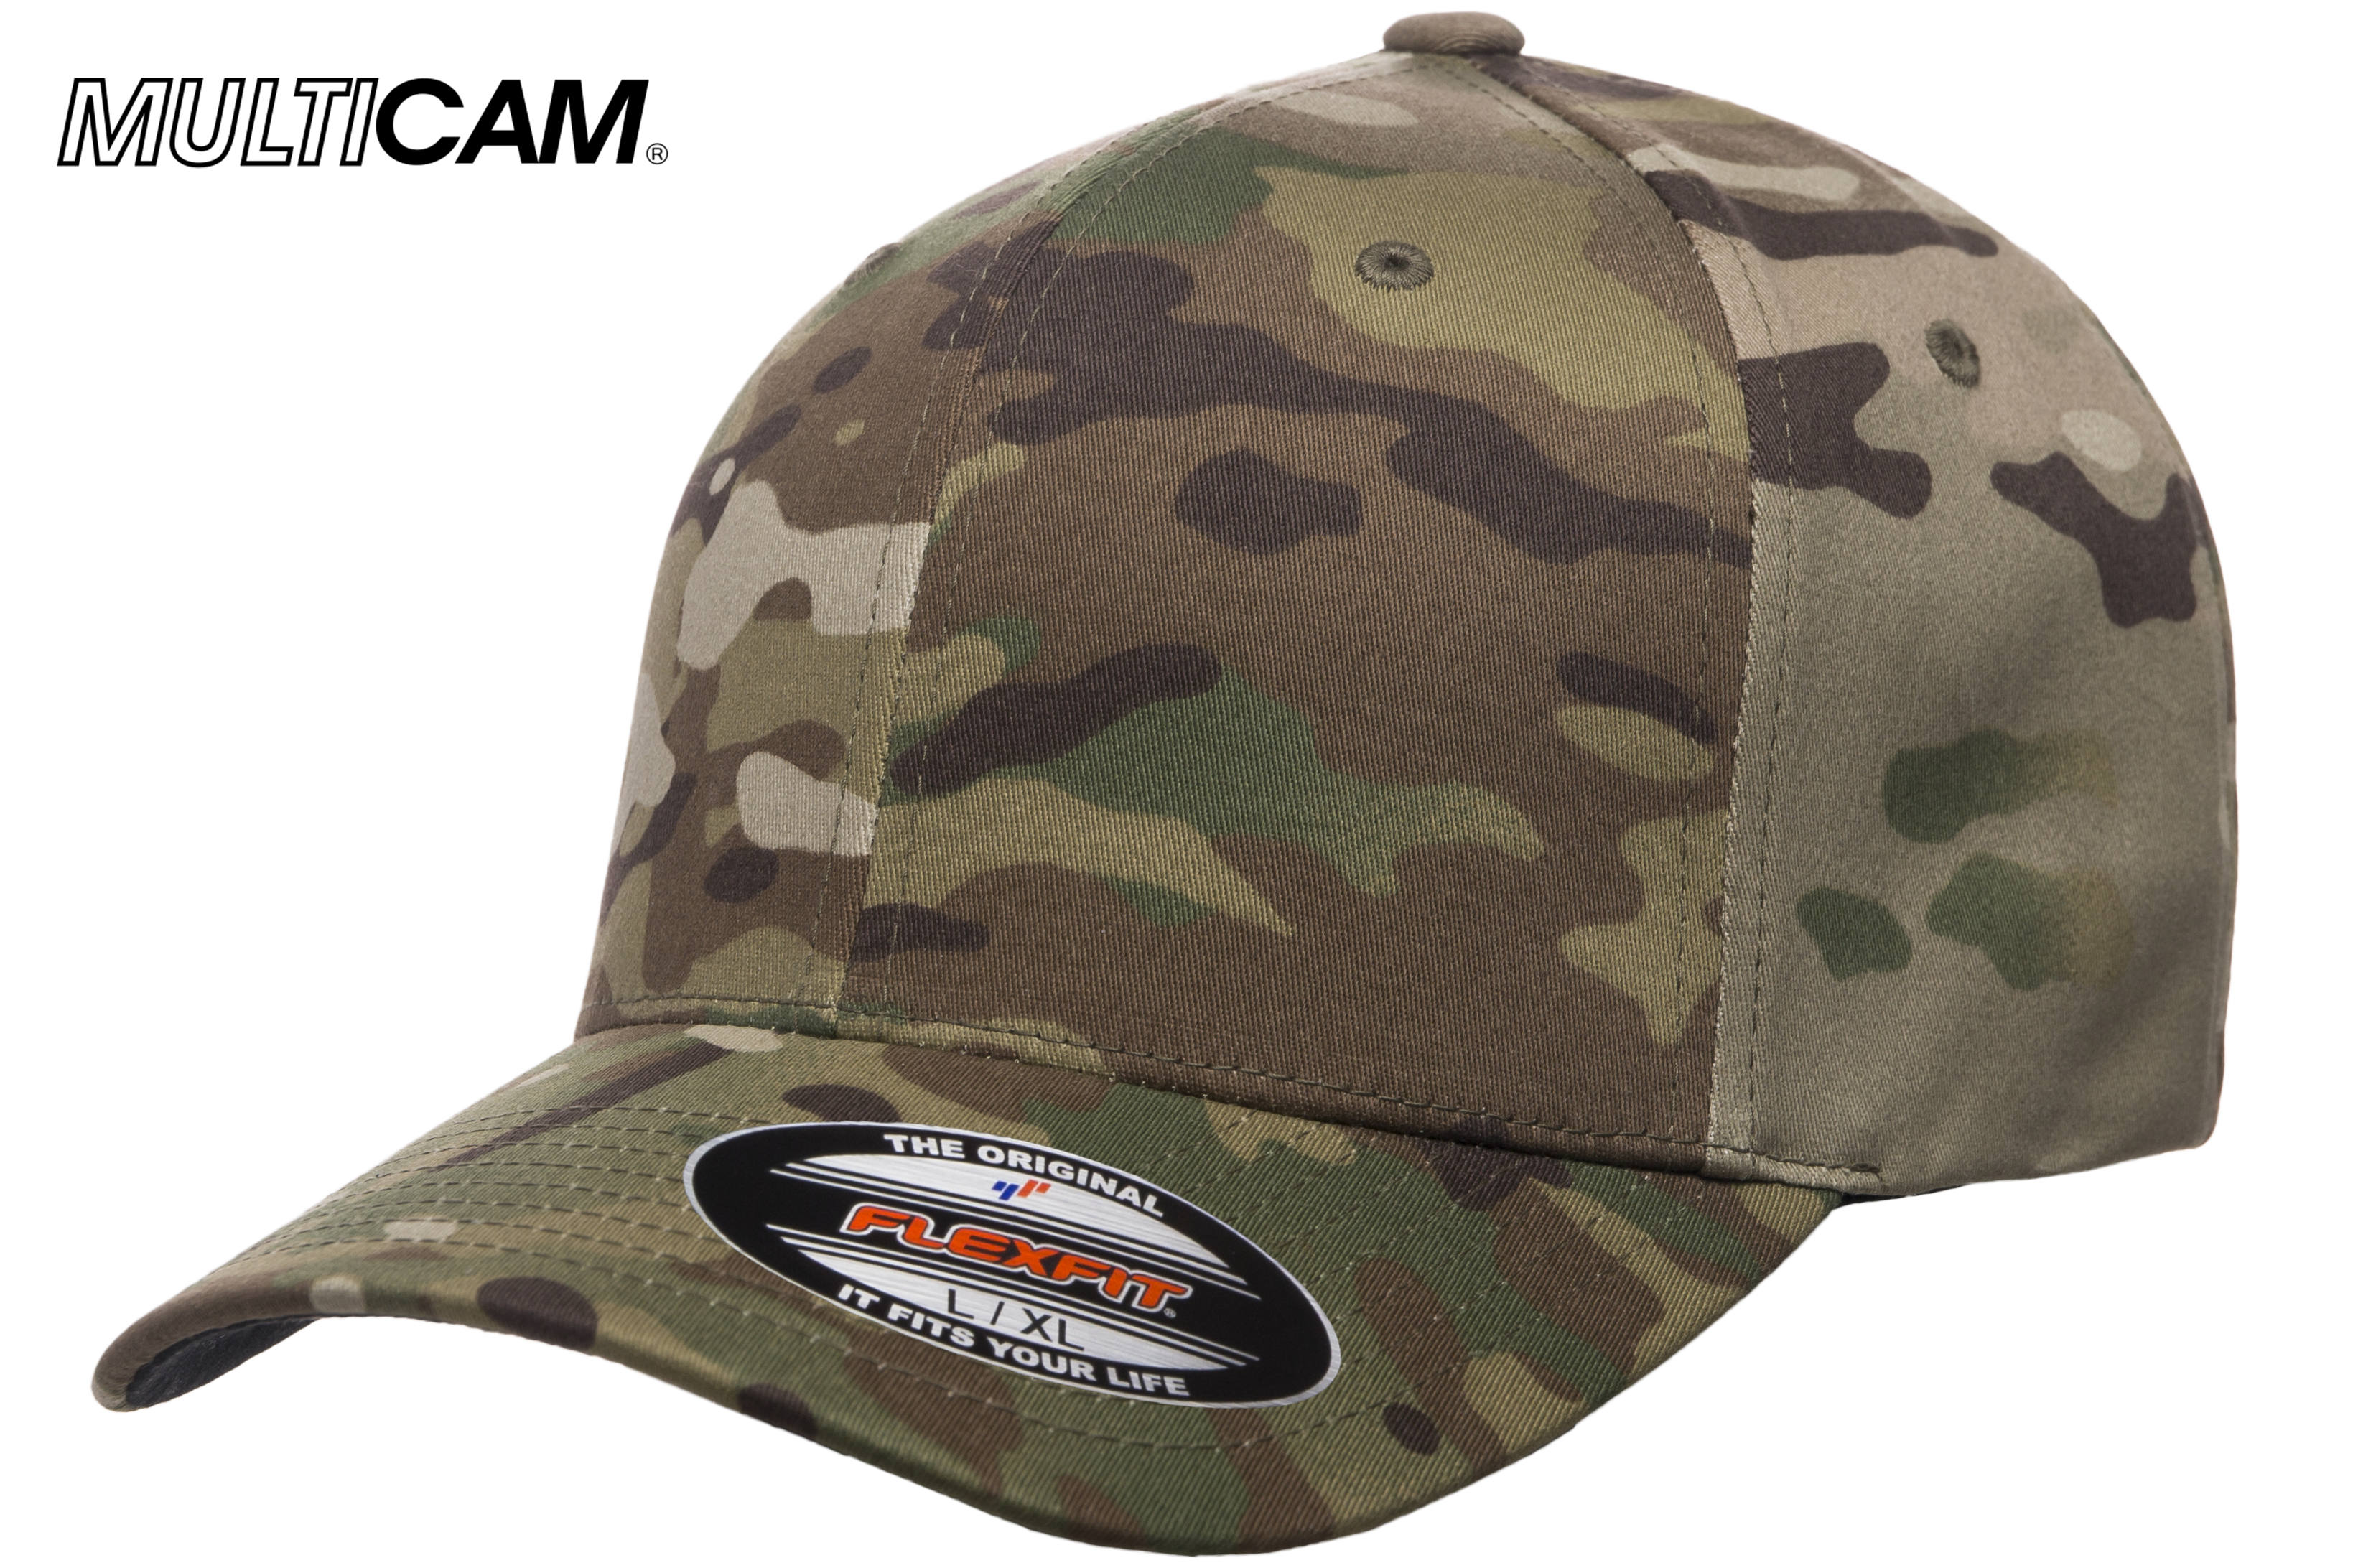 58d2da76 6277MC The One and Only Original Flexfit in Multicam® - Custom Embroidery  in Chula Vista|Precision Threads Embroidery